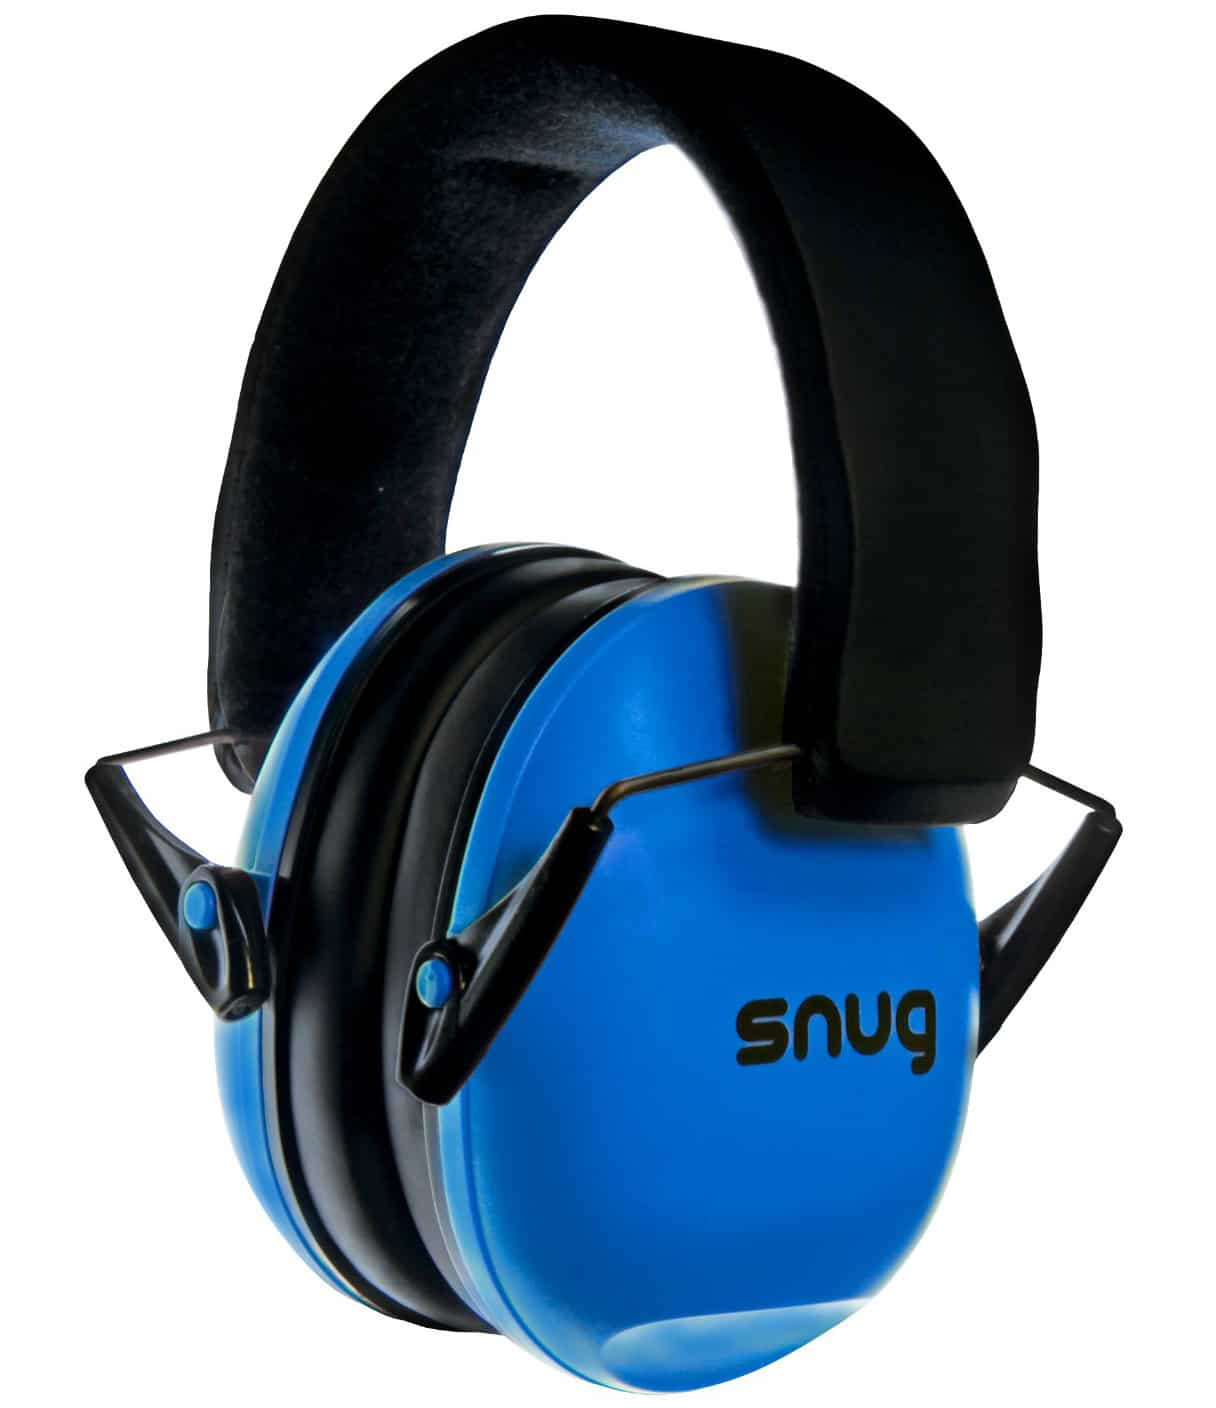 Snug Safe n Sound Kids Earmuffs / Hearing Protectors - Adjustable Headband Ear Defenders For Children and Adults (Original Blue)